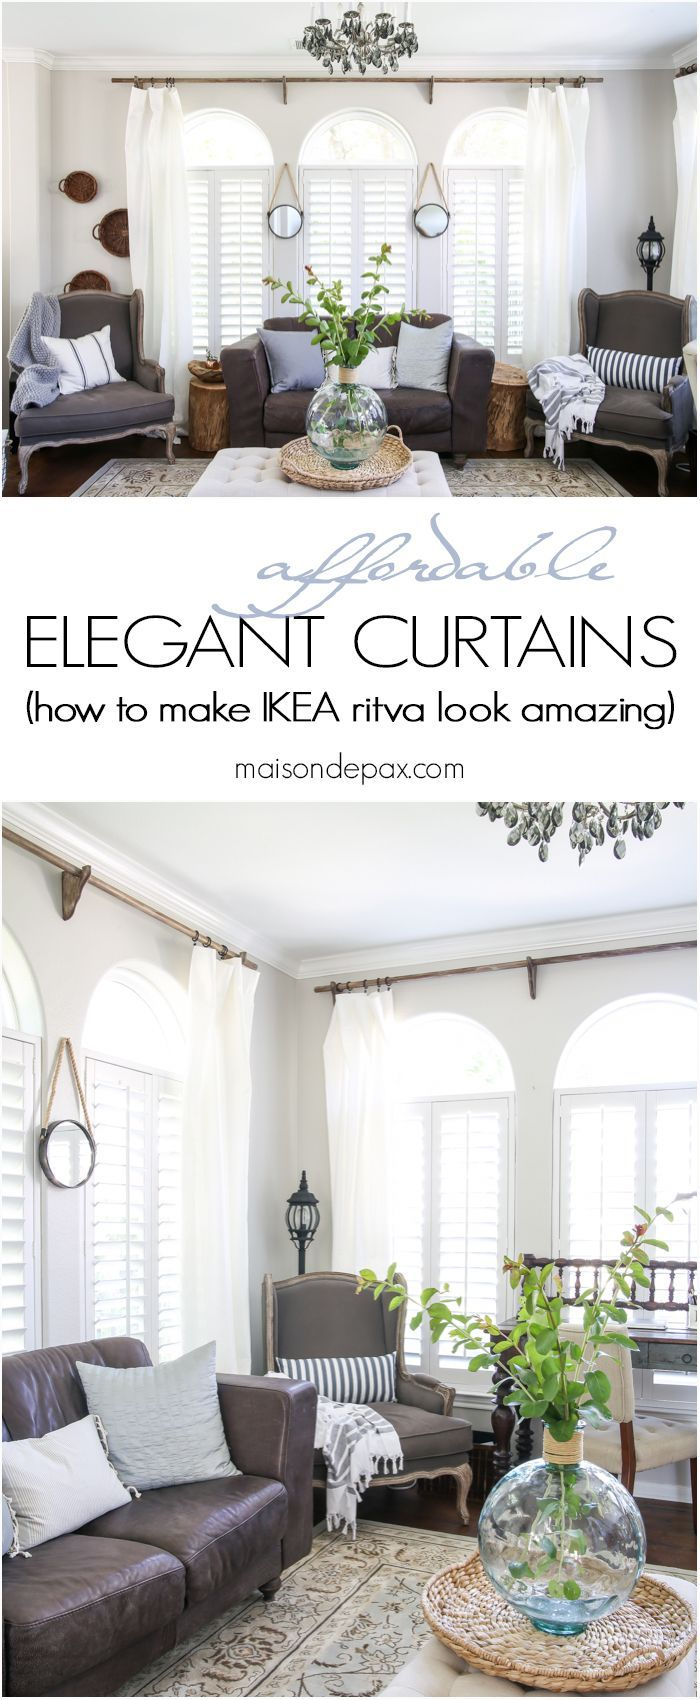 Cheap Curtains and Drapes | Pull Up Curtains | Matchstick Blinds Ikea